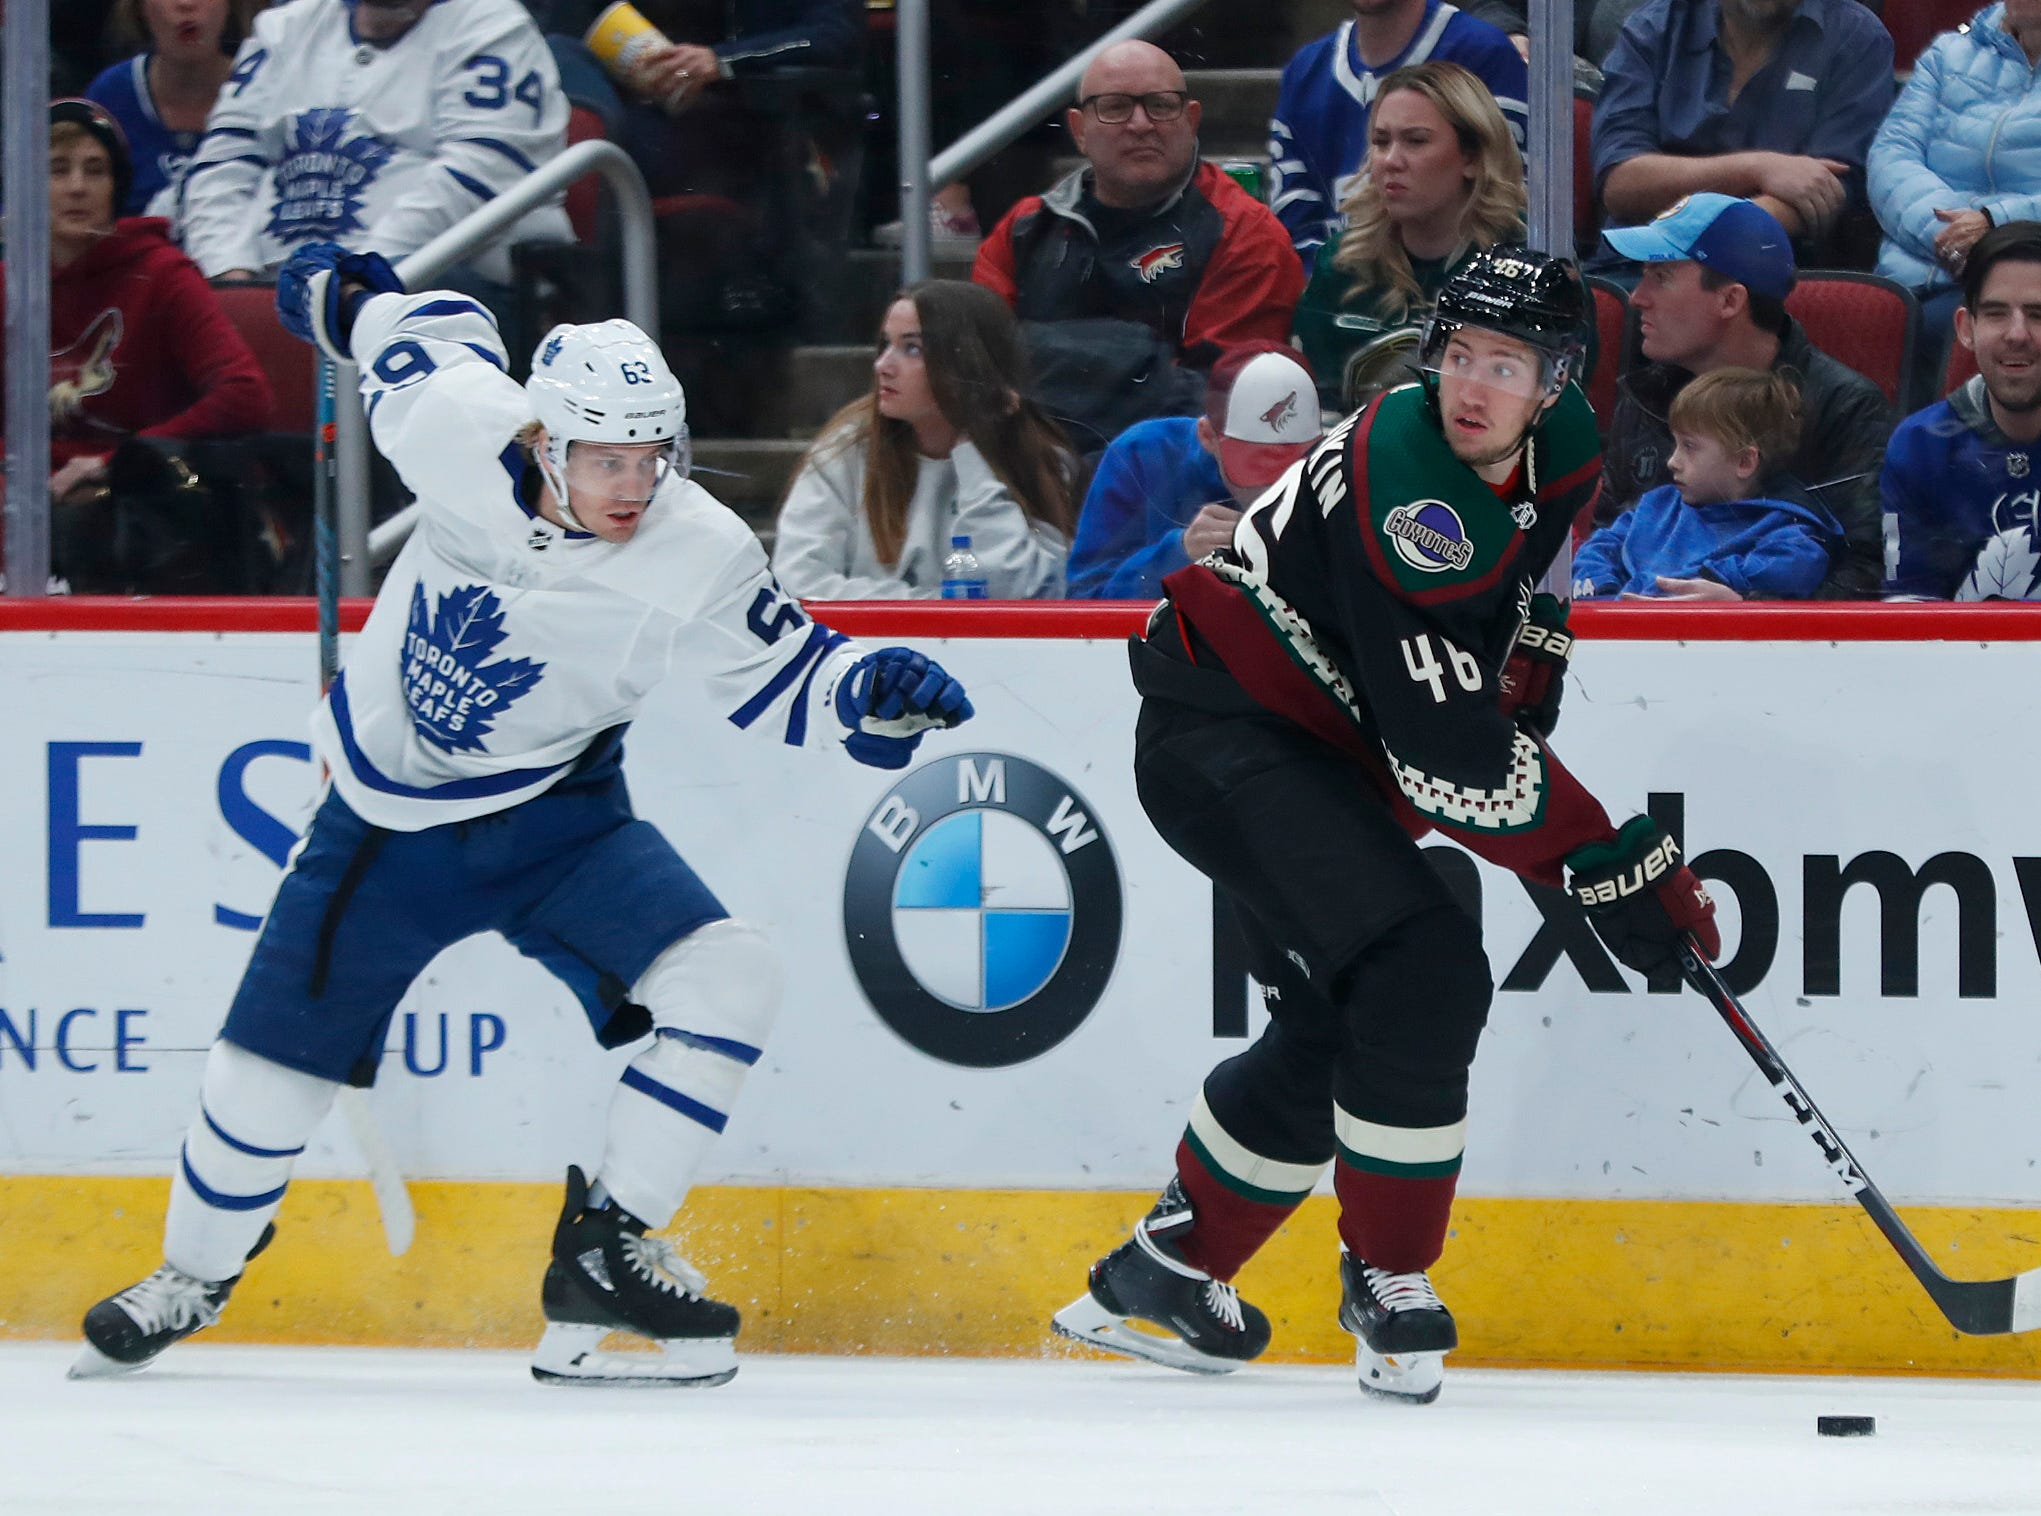 Coyotes' Ilya Lyubushkin (46) turns against the defense of Maple Leafs' Tyler Ennis (63) during the first period at Gila River Arena in Glendale, Ariz. on February 16, 2019.